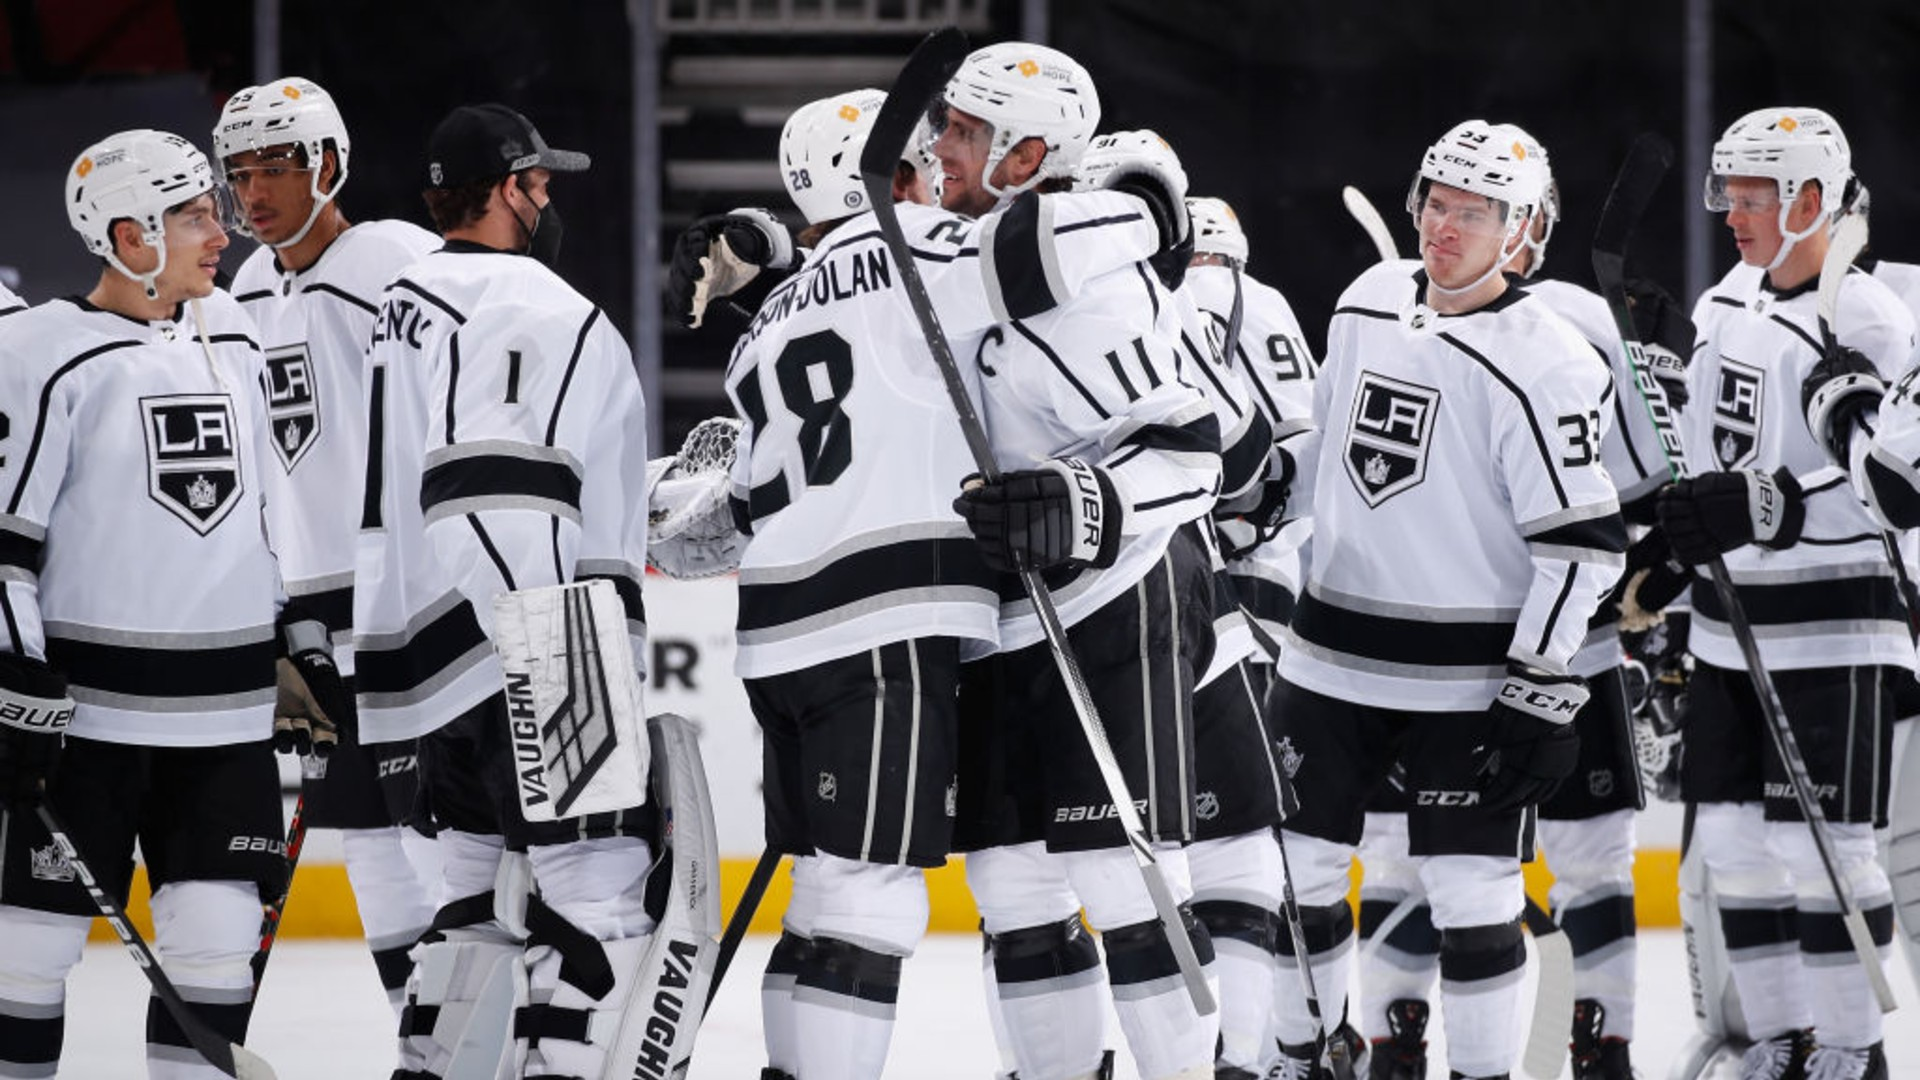 Anze Kopitar #11 of the Los Angeles Kings hugs Jaret Anderson-Dolan #28 after defeating the Arizona Coyotes and recording his 1,000th career point in the NHL game against the Arizona Coyotes at Gila River Arena on May 05, 2021 in Glendale, Arizona. (Christian Petersen/Getty Images)